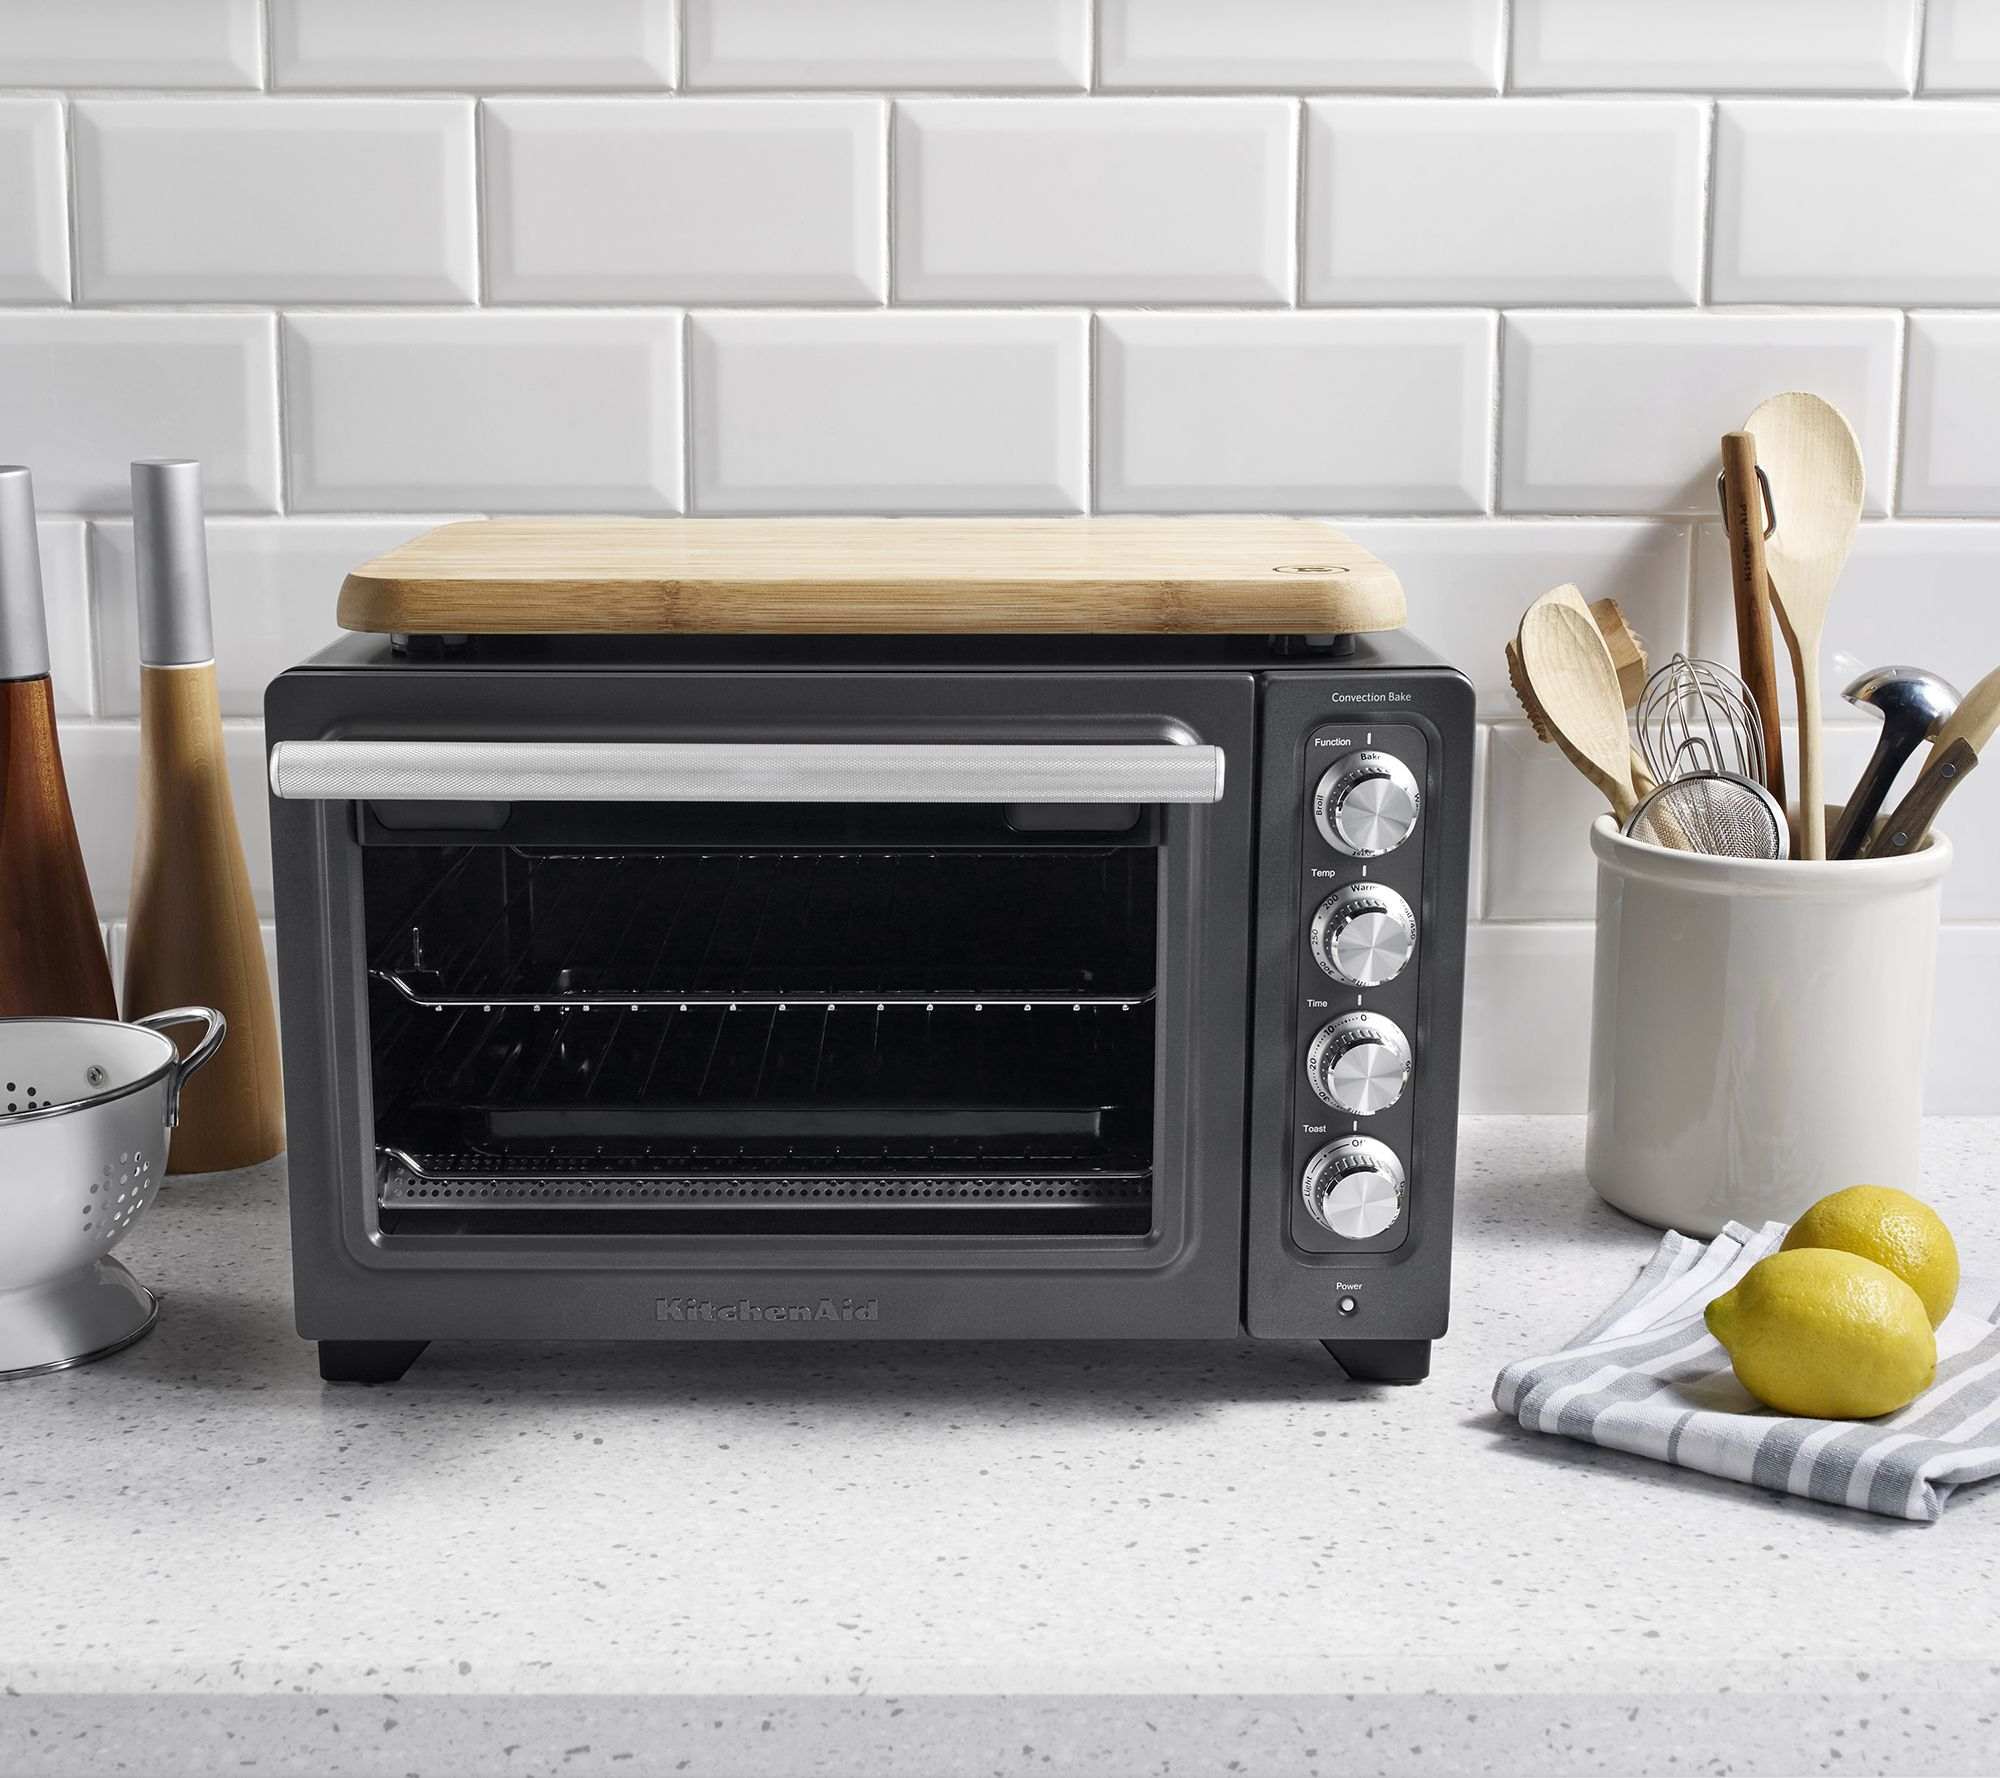 convection and reviews stainless dridlle hamilton with counter for countertop steel red oven appliance modern beach kitchen grill appliances kitchenaid element heat under toaster target ovens stylish decker black control cool amazing walmart rotisserie interesting